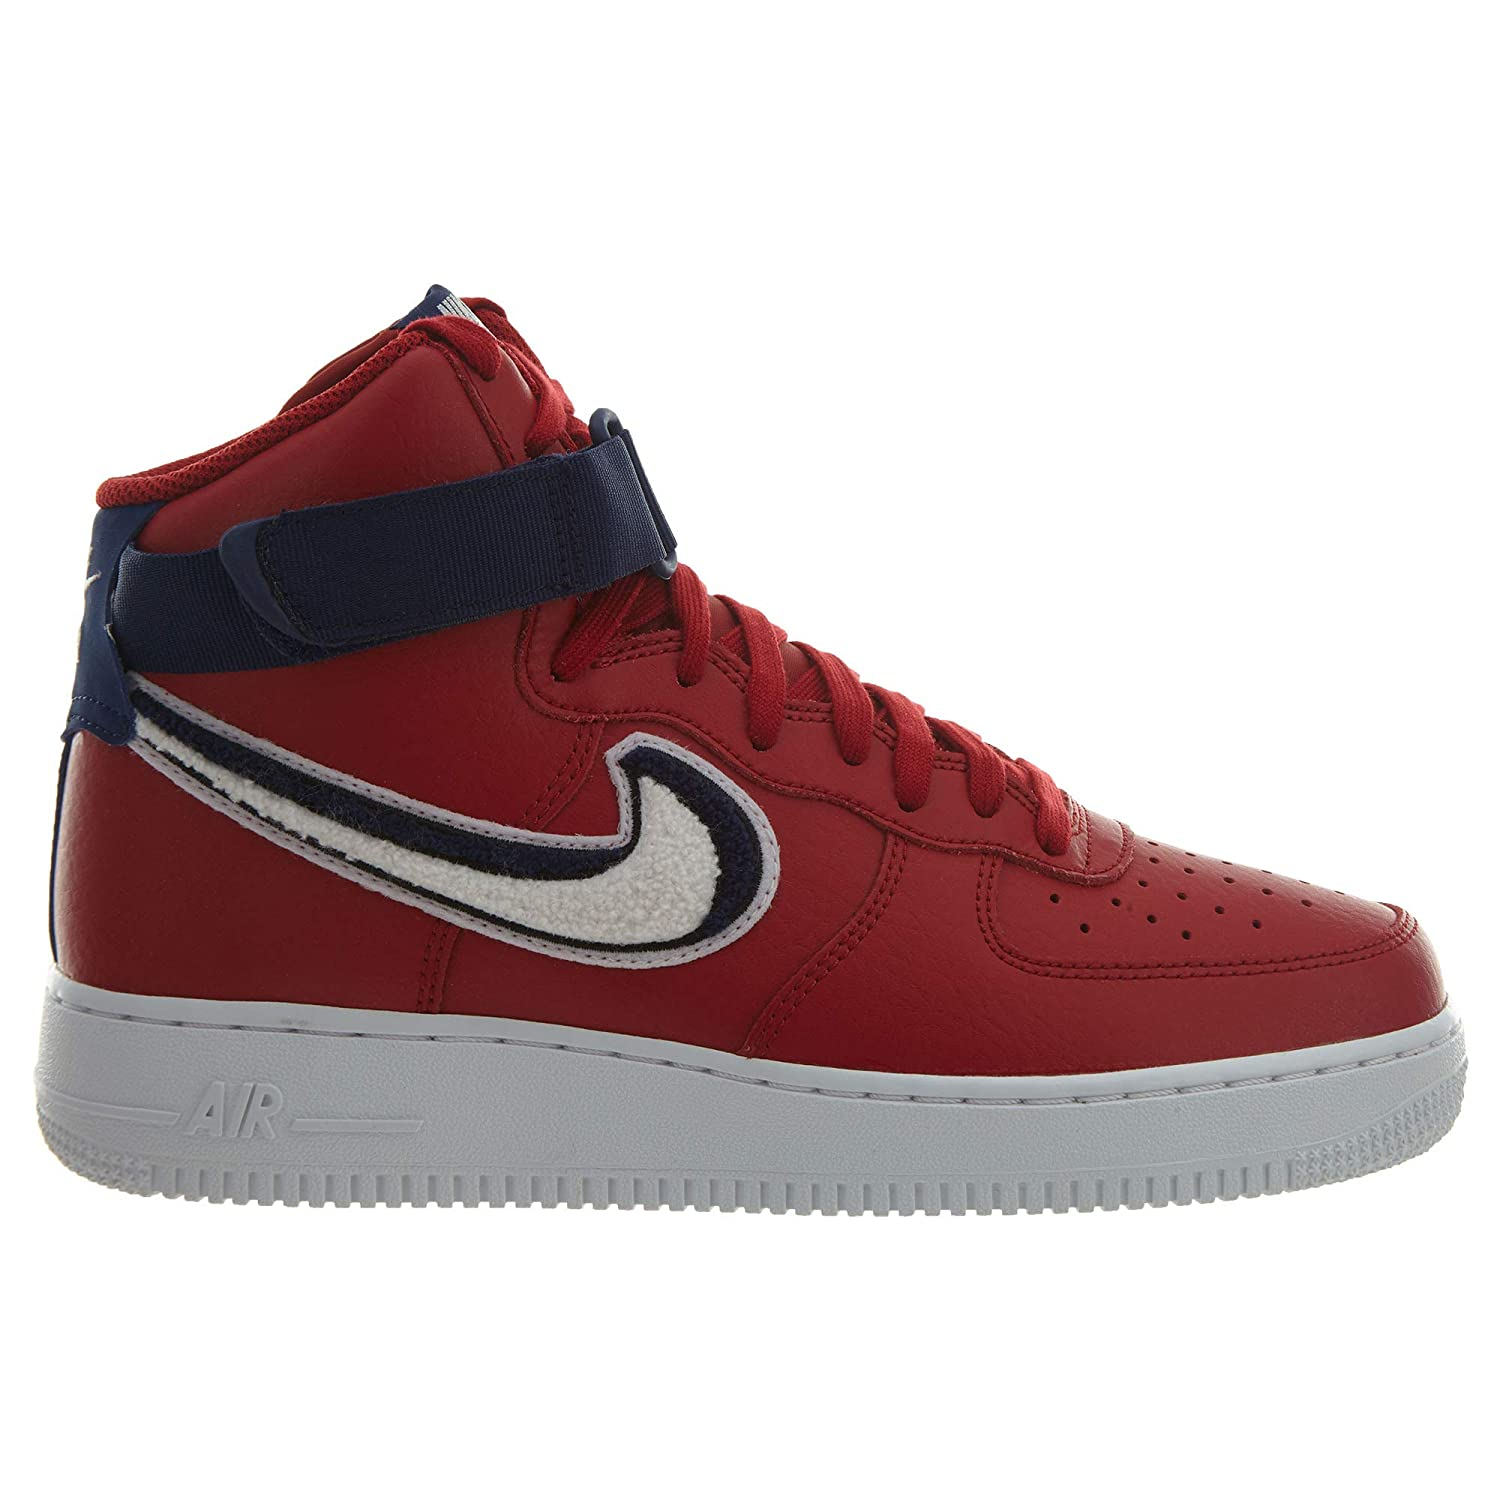 online store e4771 8738a Amazon.com   Nike Air Force 1 High 07 Lv8 Mens 806403-603 Size 14    Basketball